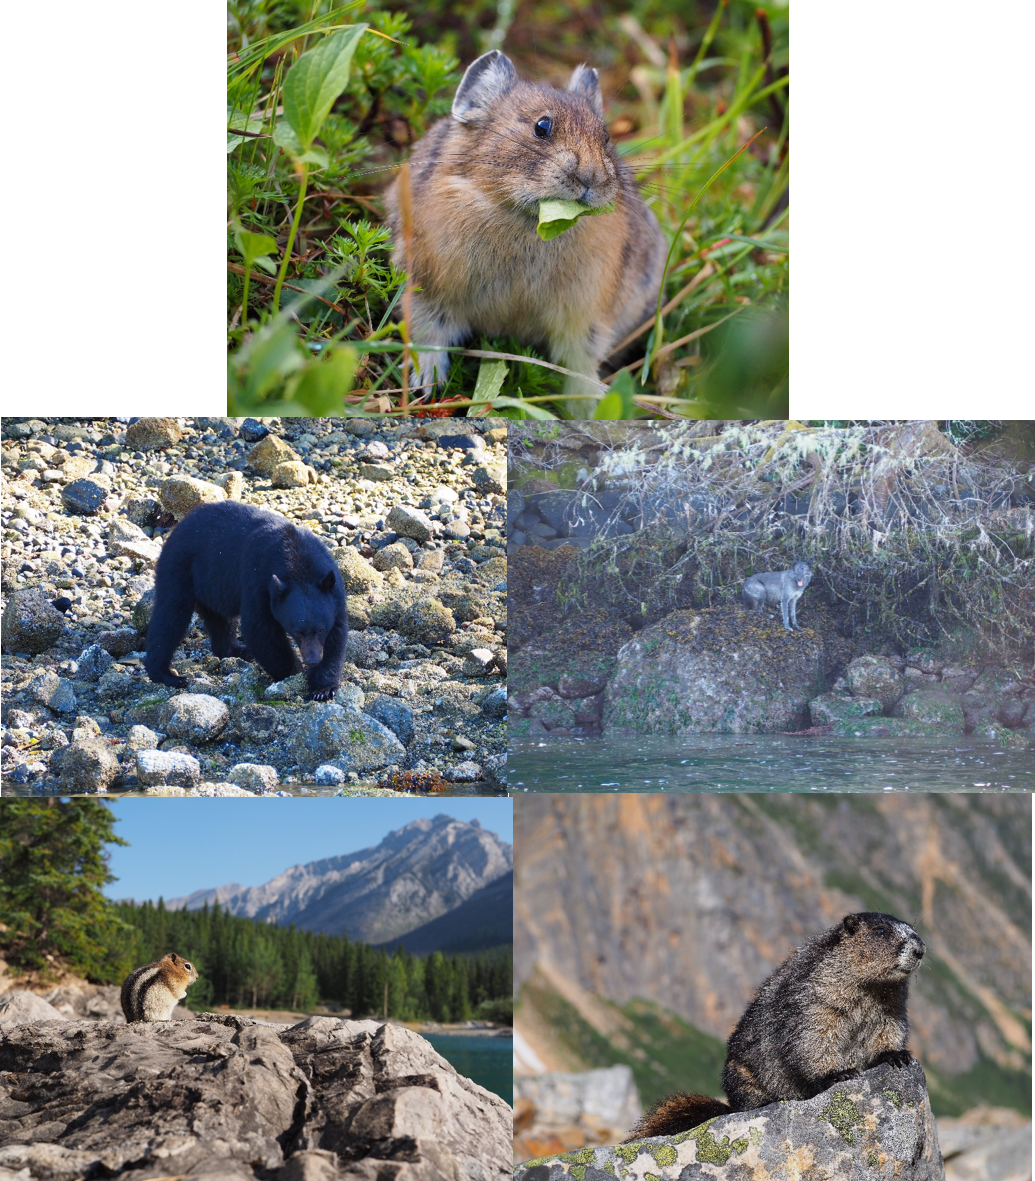 A collection of my favourite animal photos from my Rockie Mountains/Vancouver Island road trip, Canada. From the top going clockwise: Rockie Mountain pika; elusive wolf on Vancouver Island; marmot along the Edith Cavell hike, Jasper; Golden-mantled ground squirrel looking over Lake Minnewanka, Banff; black bear flipping rocks at Tofino, Vancouver Island